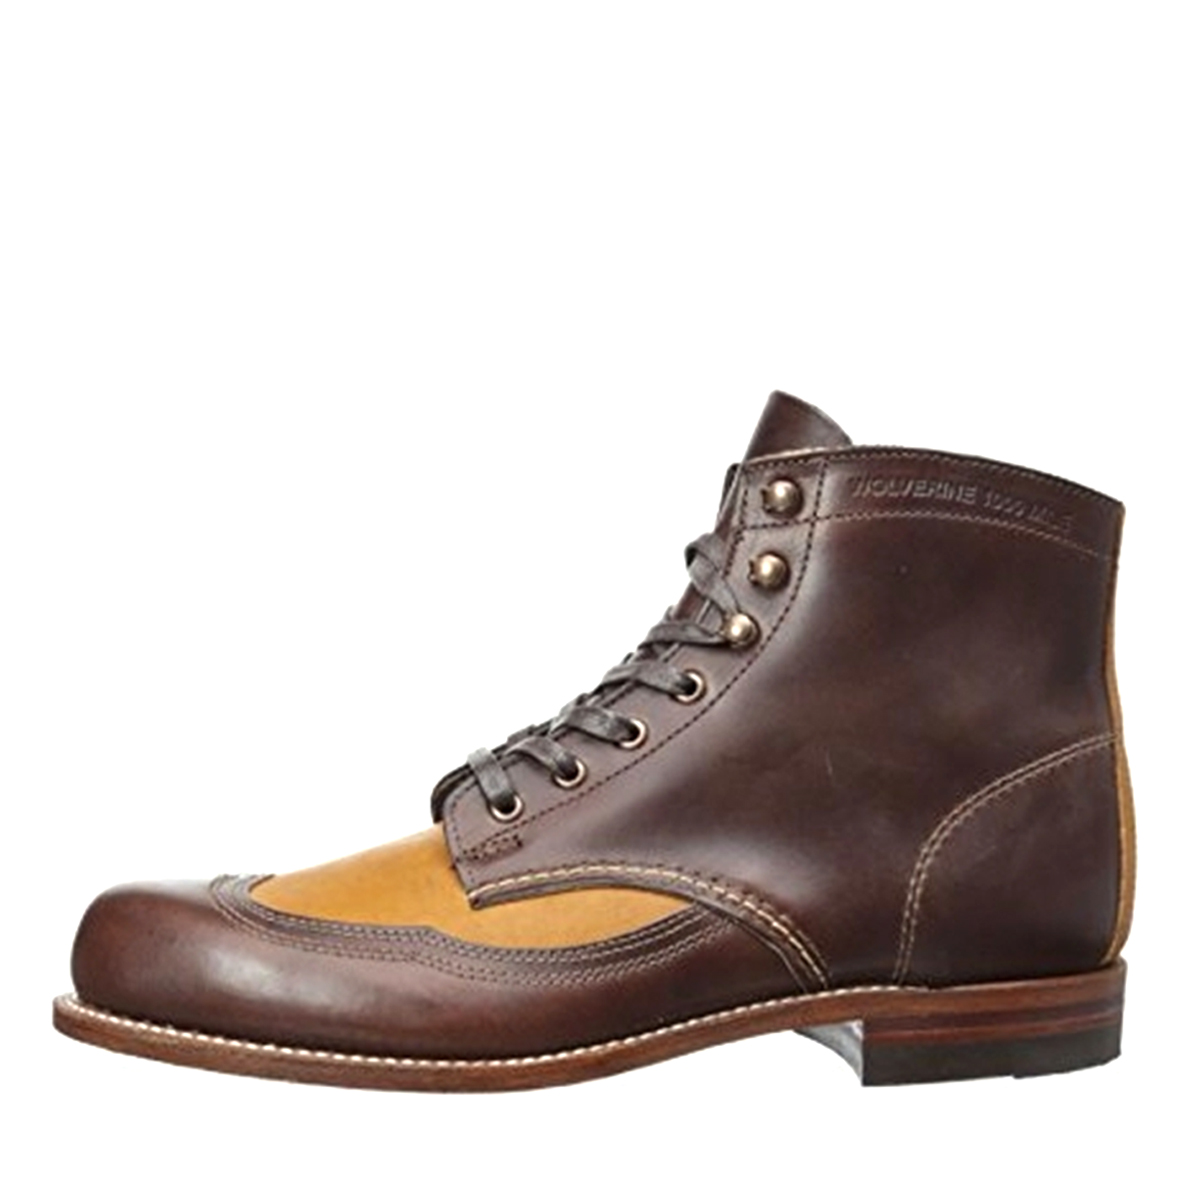 Wolverine Men's Addison 1000 Mile Wingtip Boots W06000 Brown Tan by